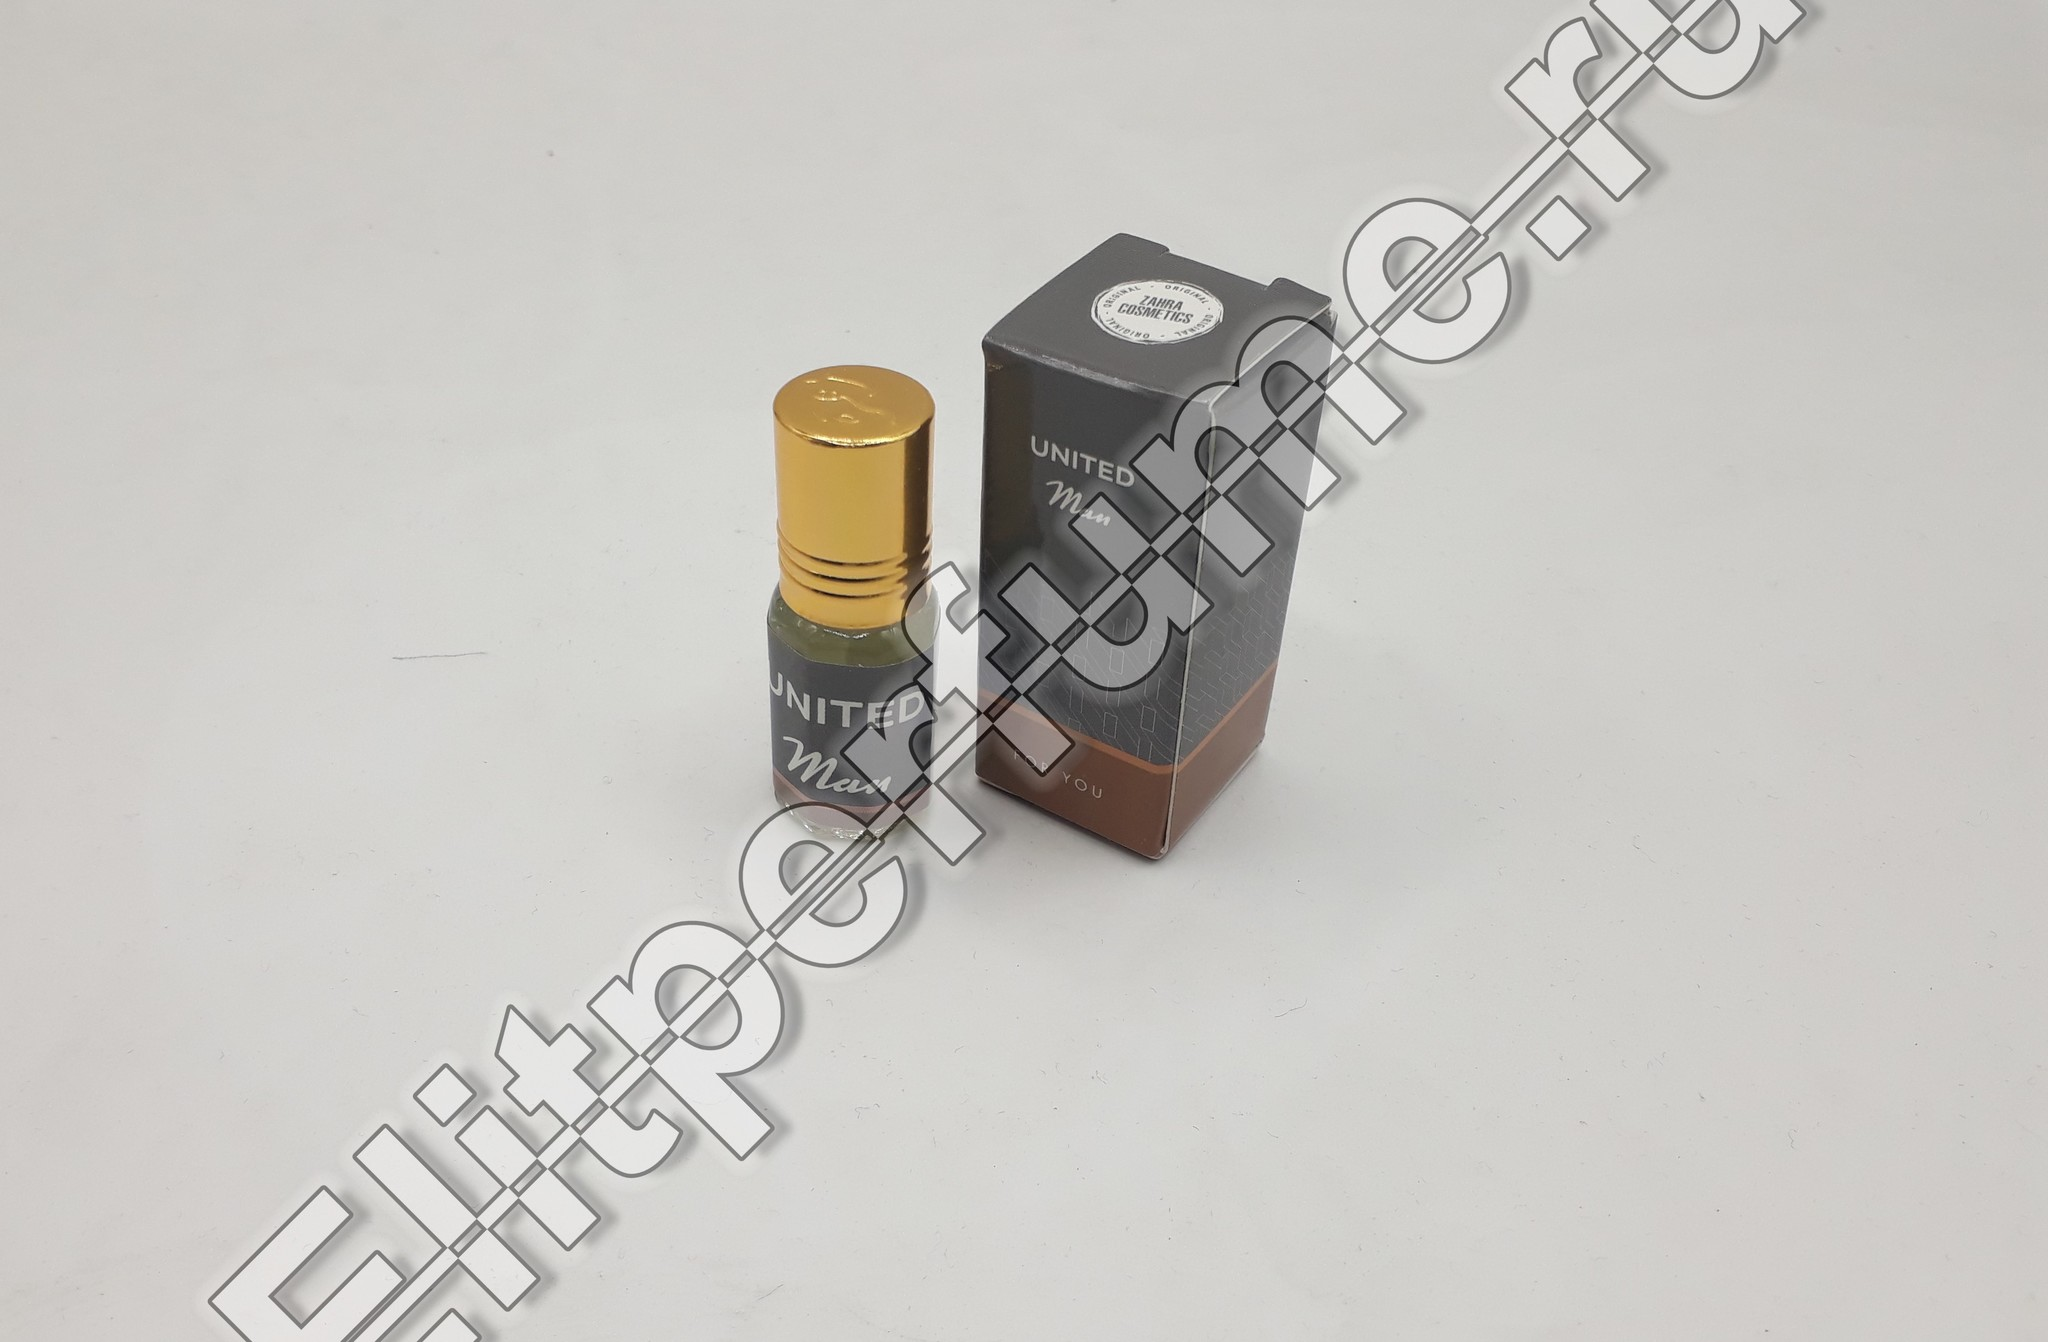 For You United Man 3 мл арабские масляные духи от Захра Zahra Perfumes